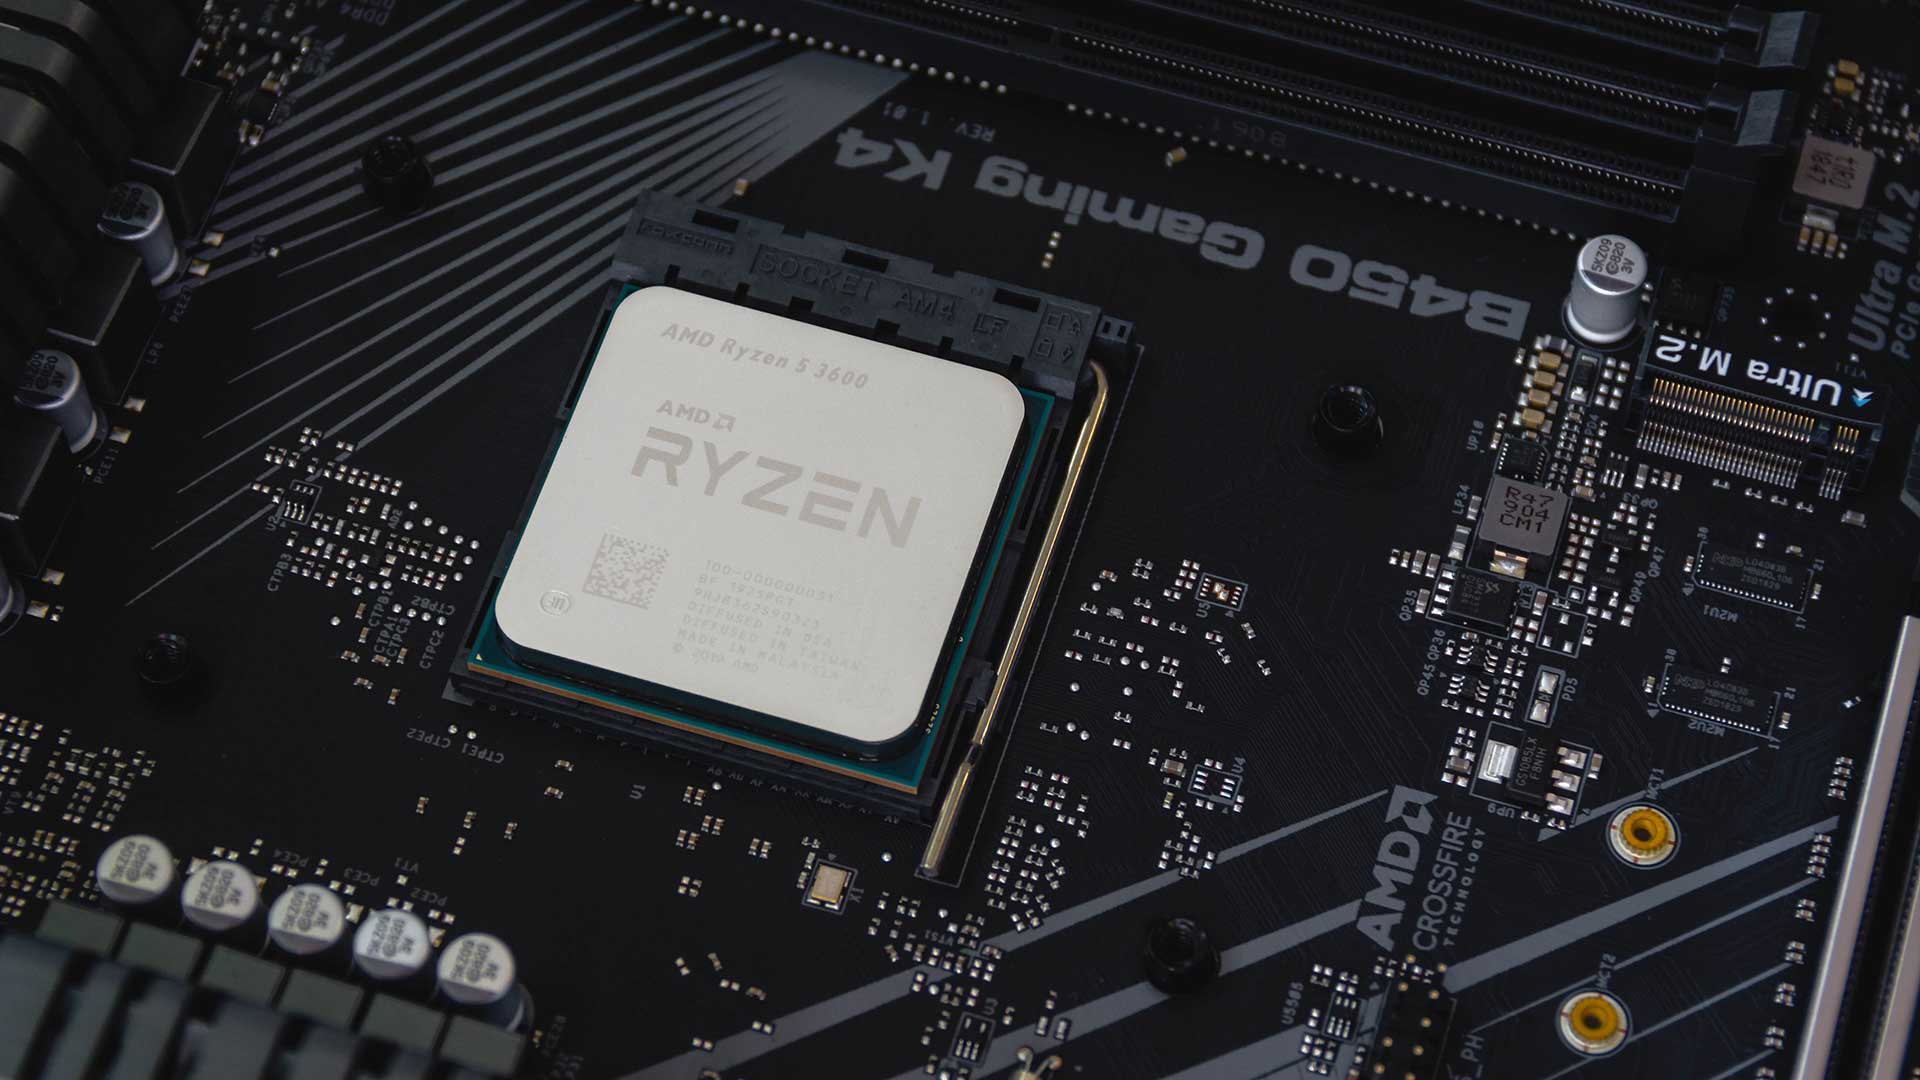 Ryzen Chip AMD